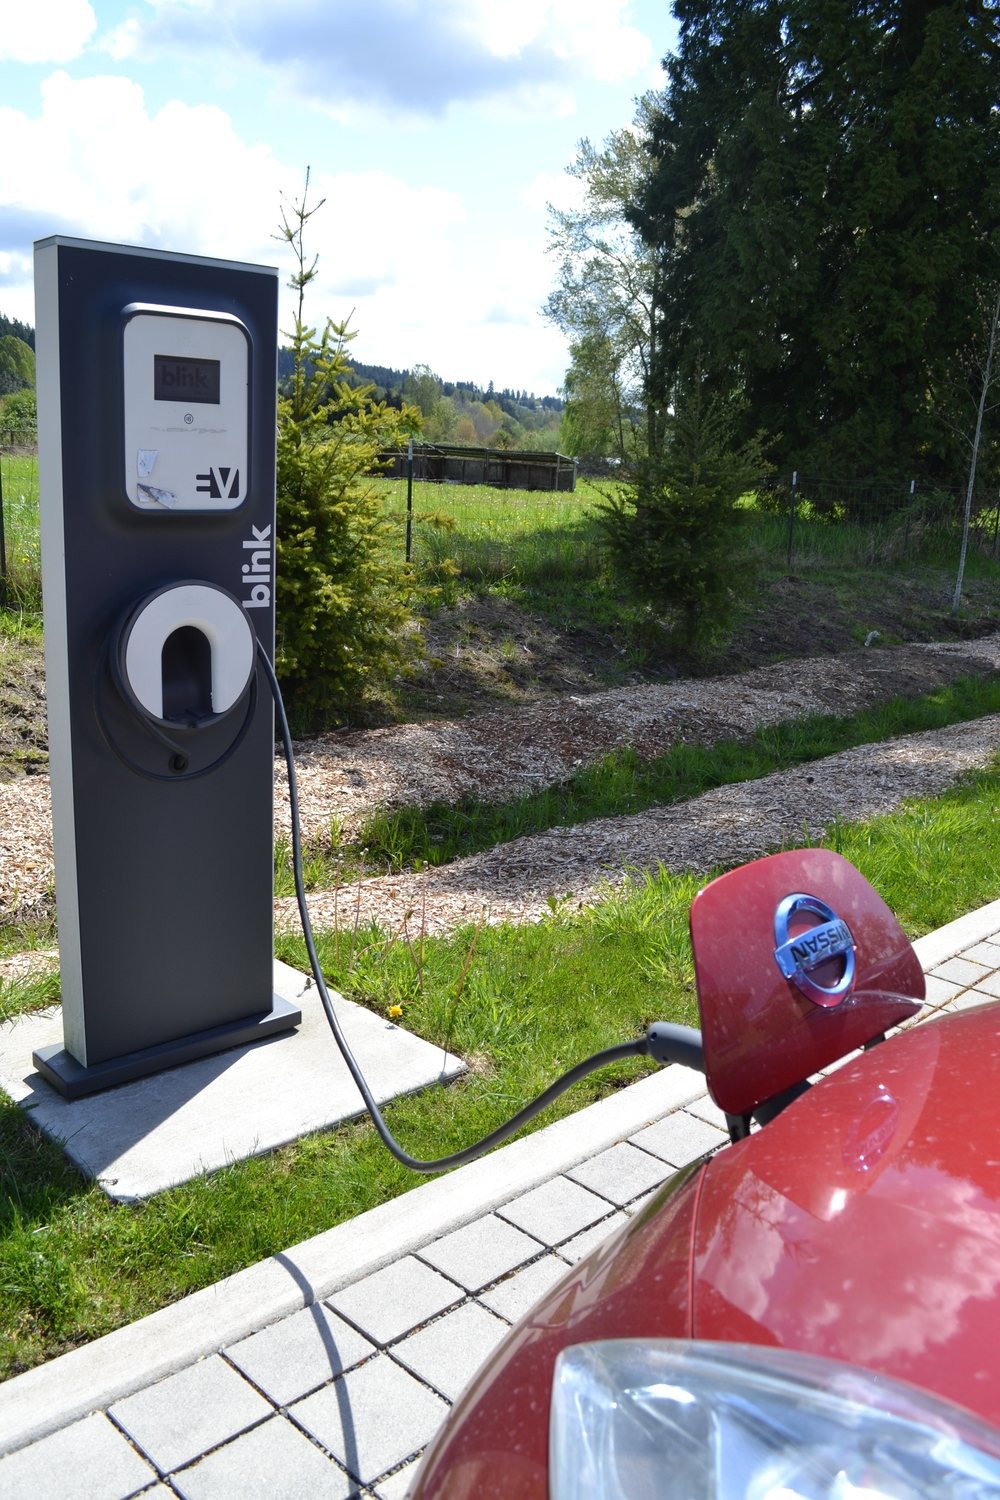 Charge that Nissan Leaf with solar power!